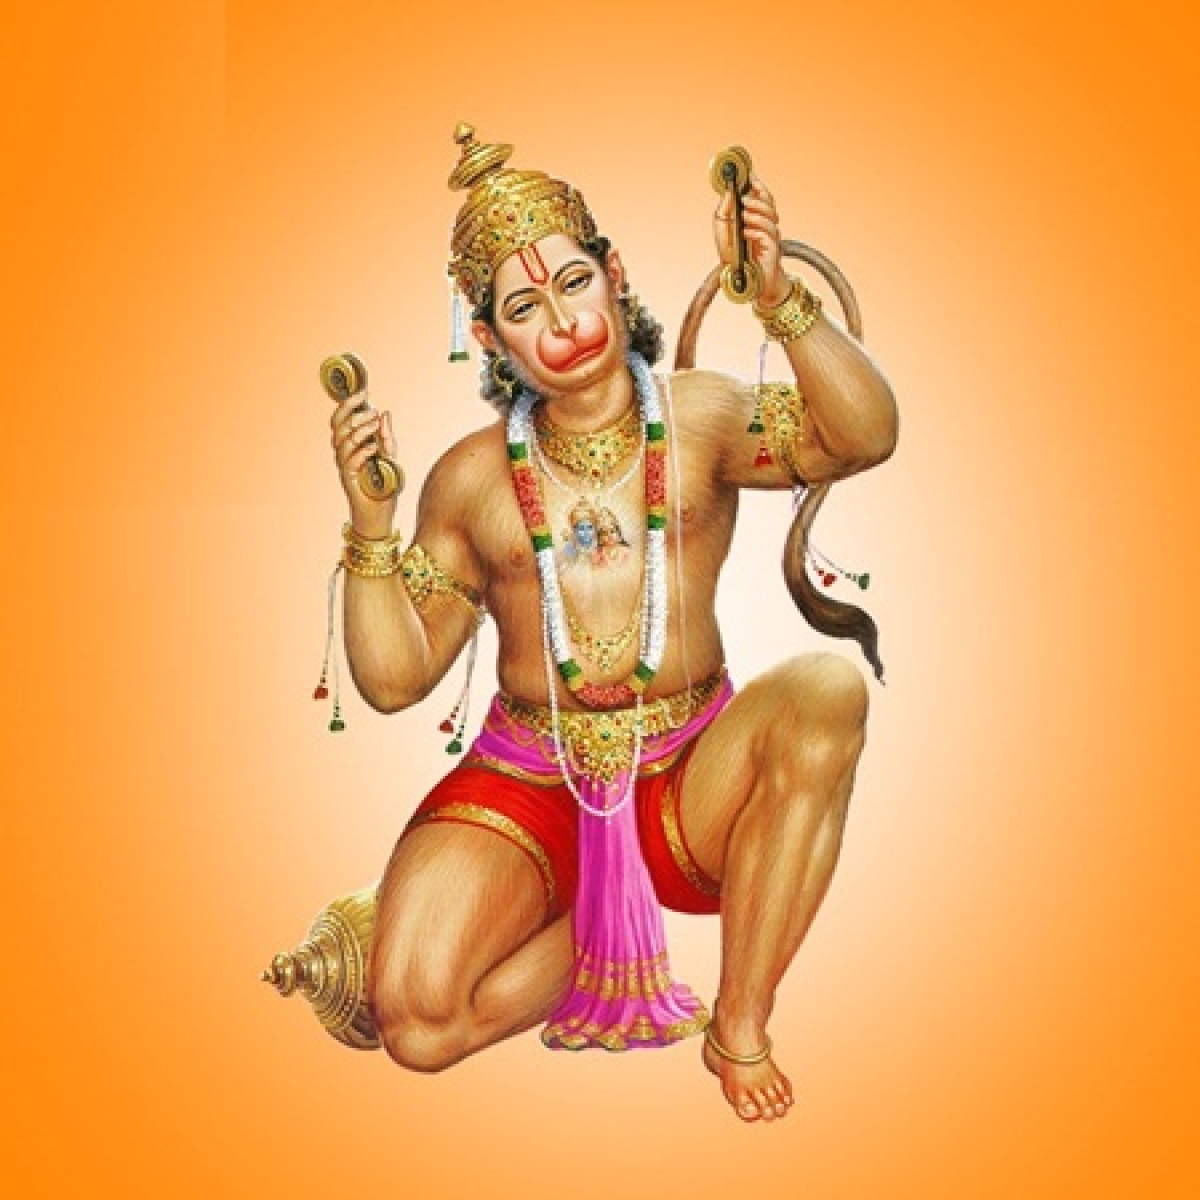 Inauguration next year; Lord Hanuman's 72-foot-high octa-metal statue built in Indore